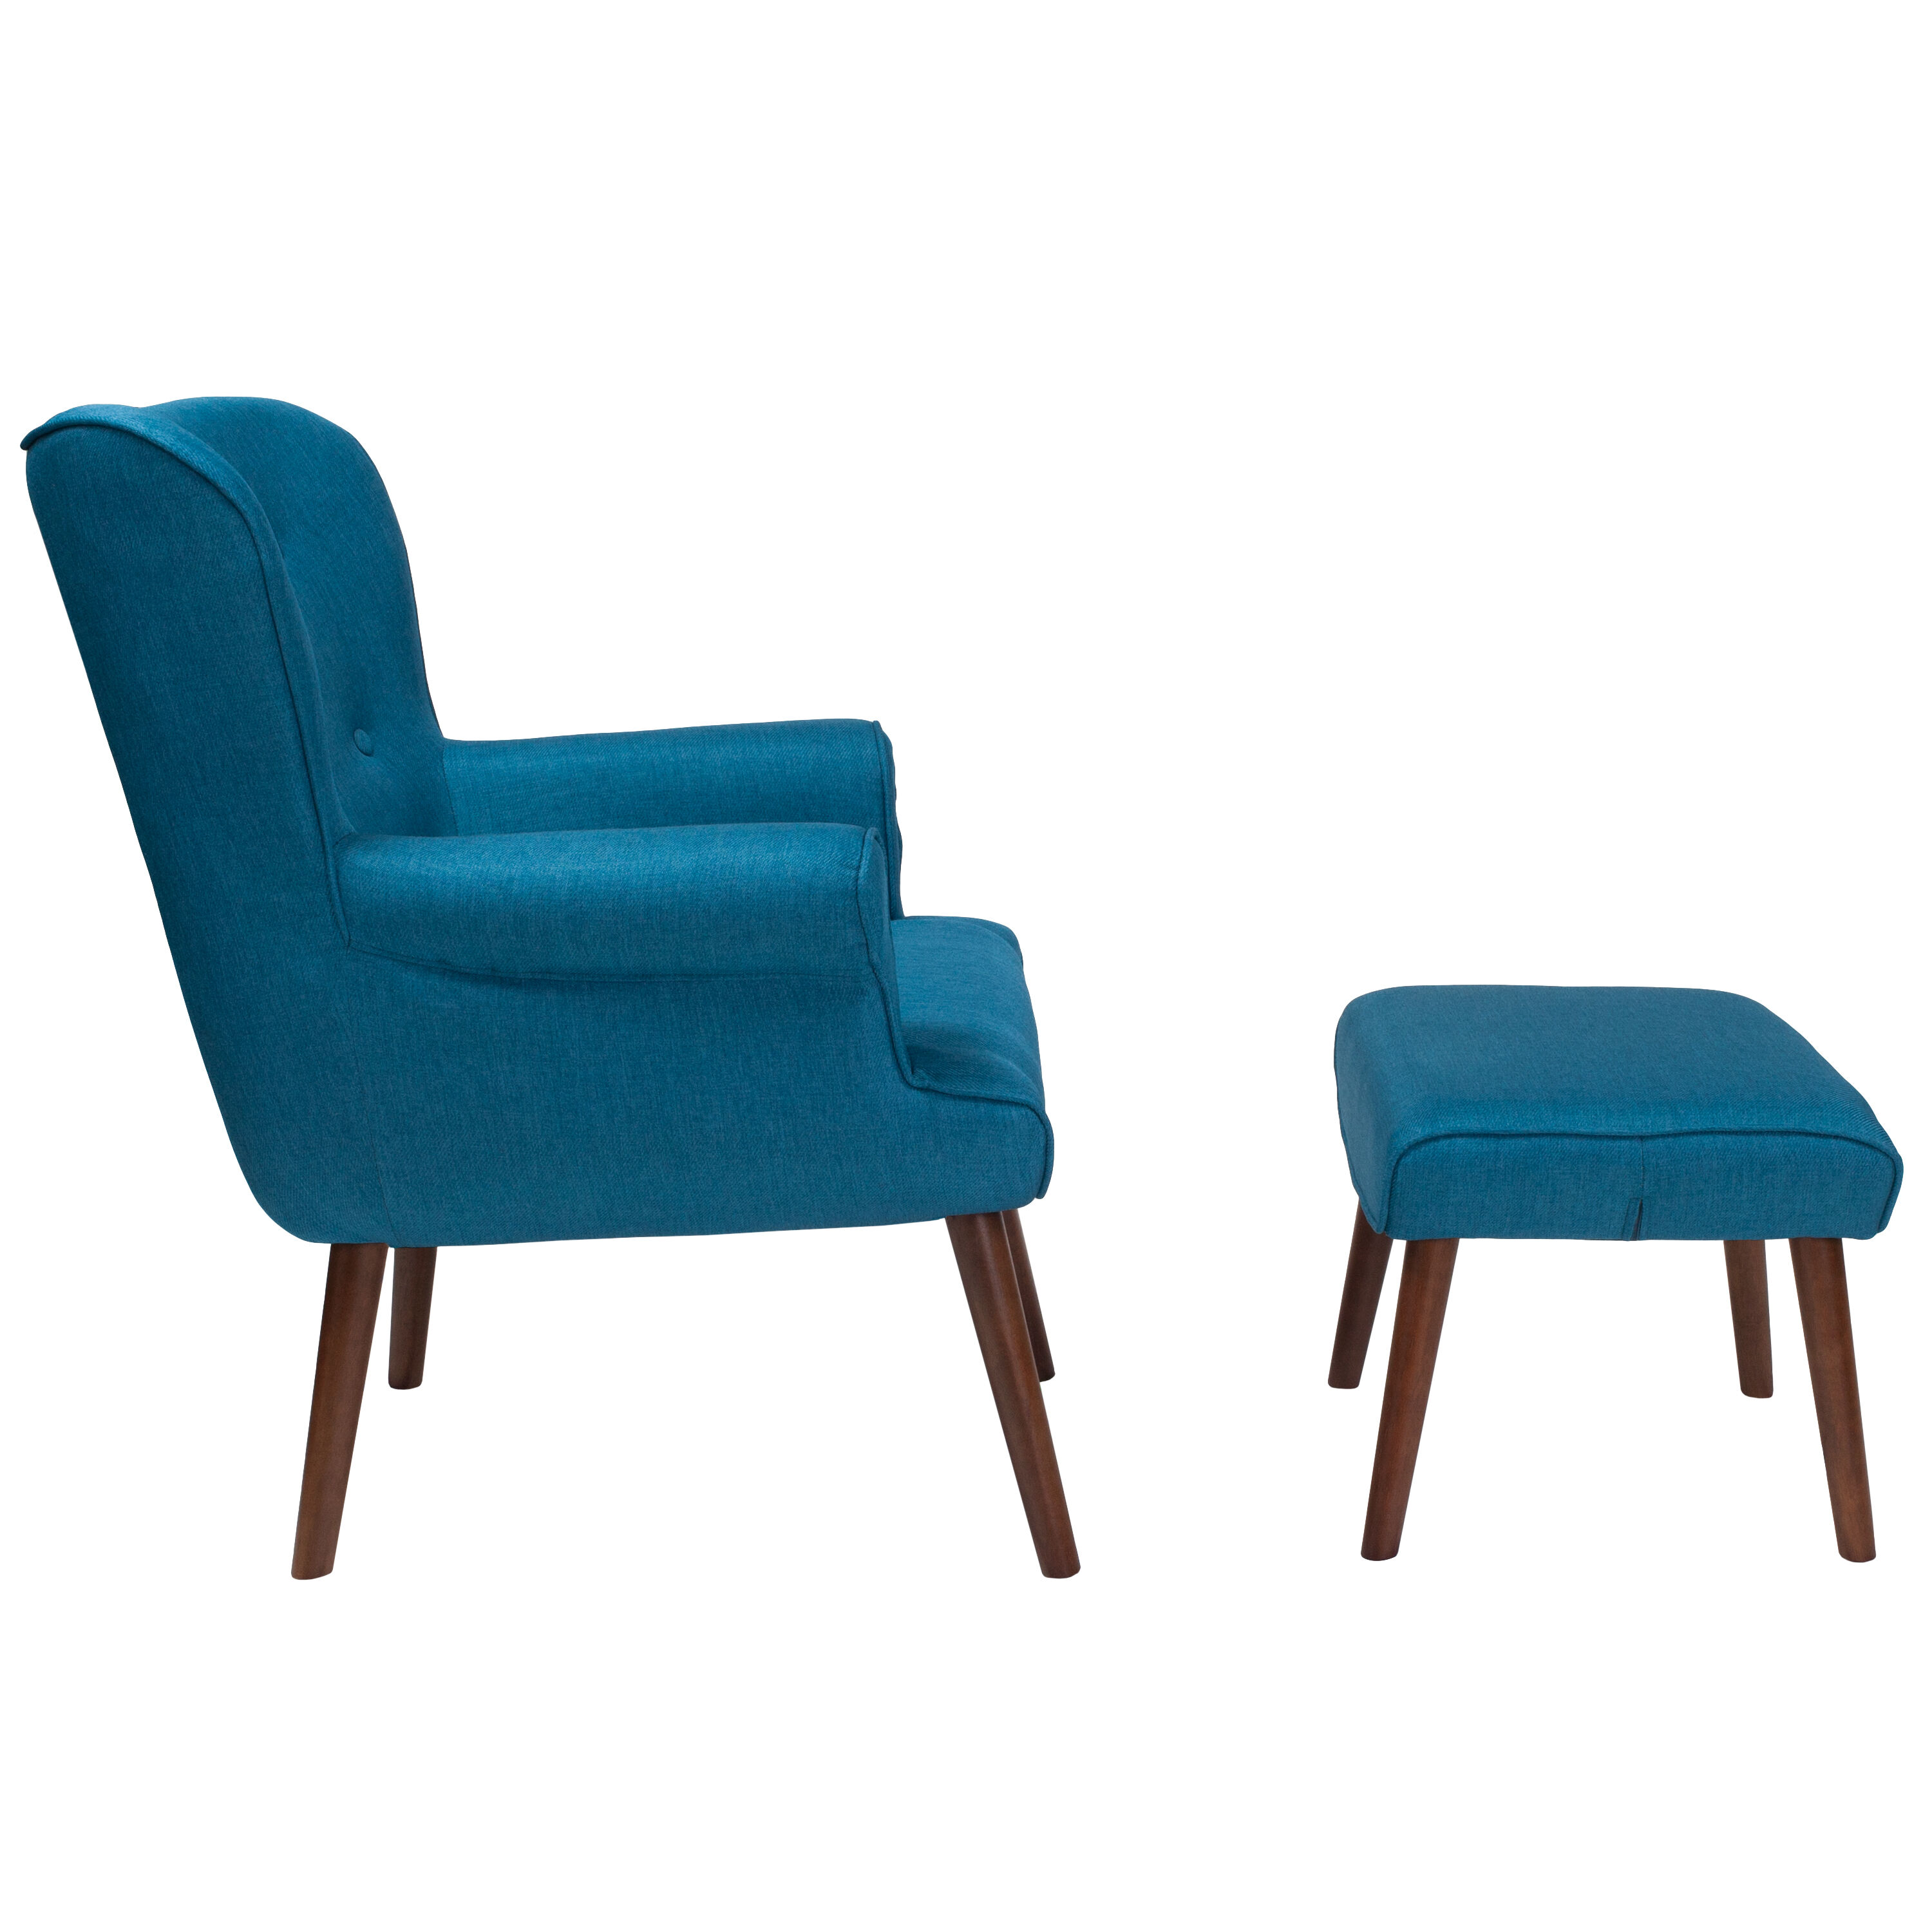 Teal Wingback Chair Blue Fabric Wing Chair Ott Qy B39 Co Blu Gg Churchchairs4less